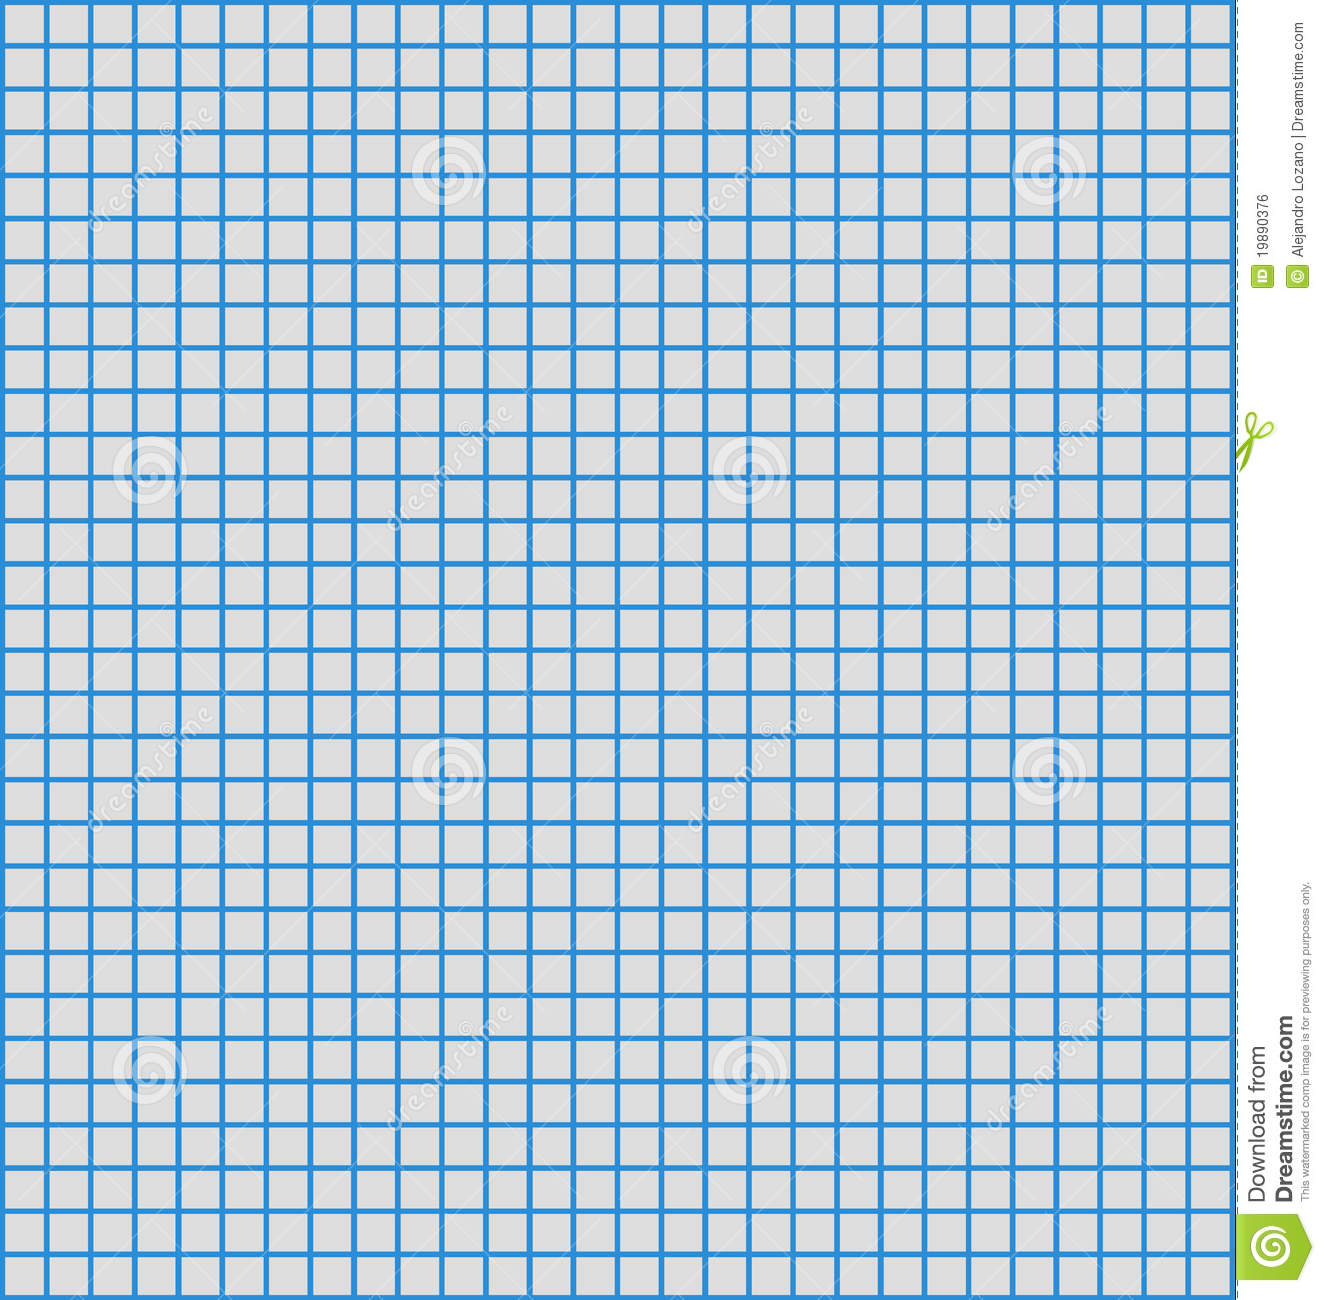 Blue Line Graph Paper Royalty Free Stock Image.